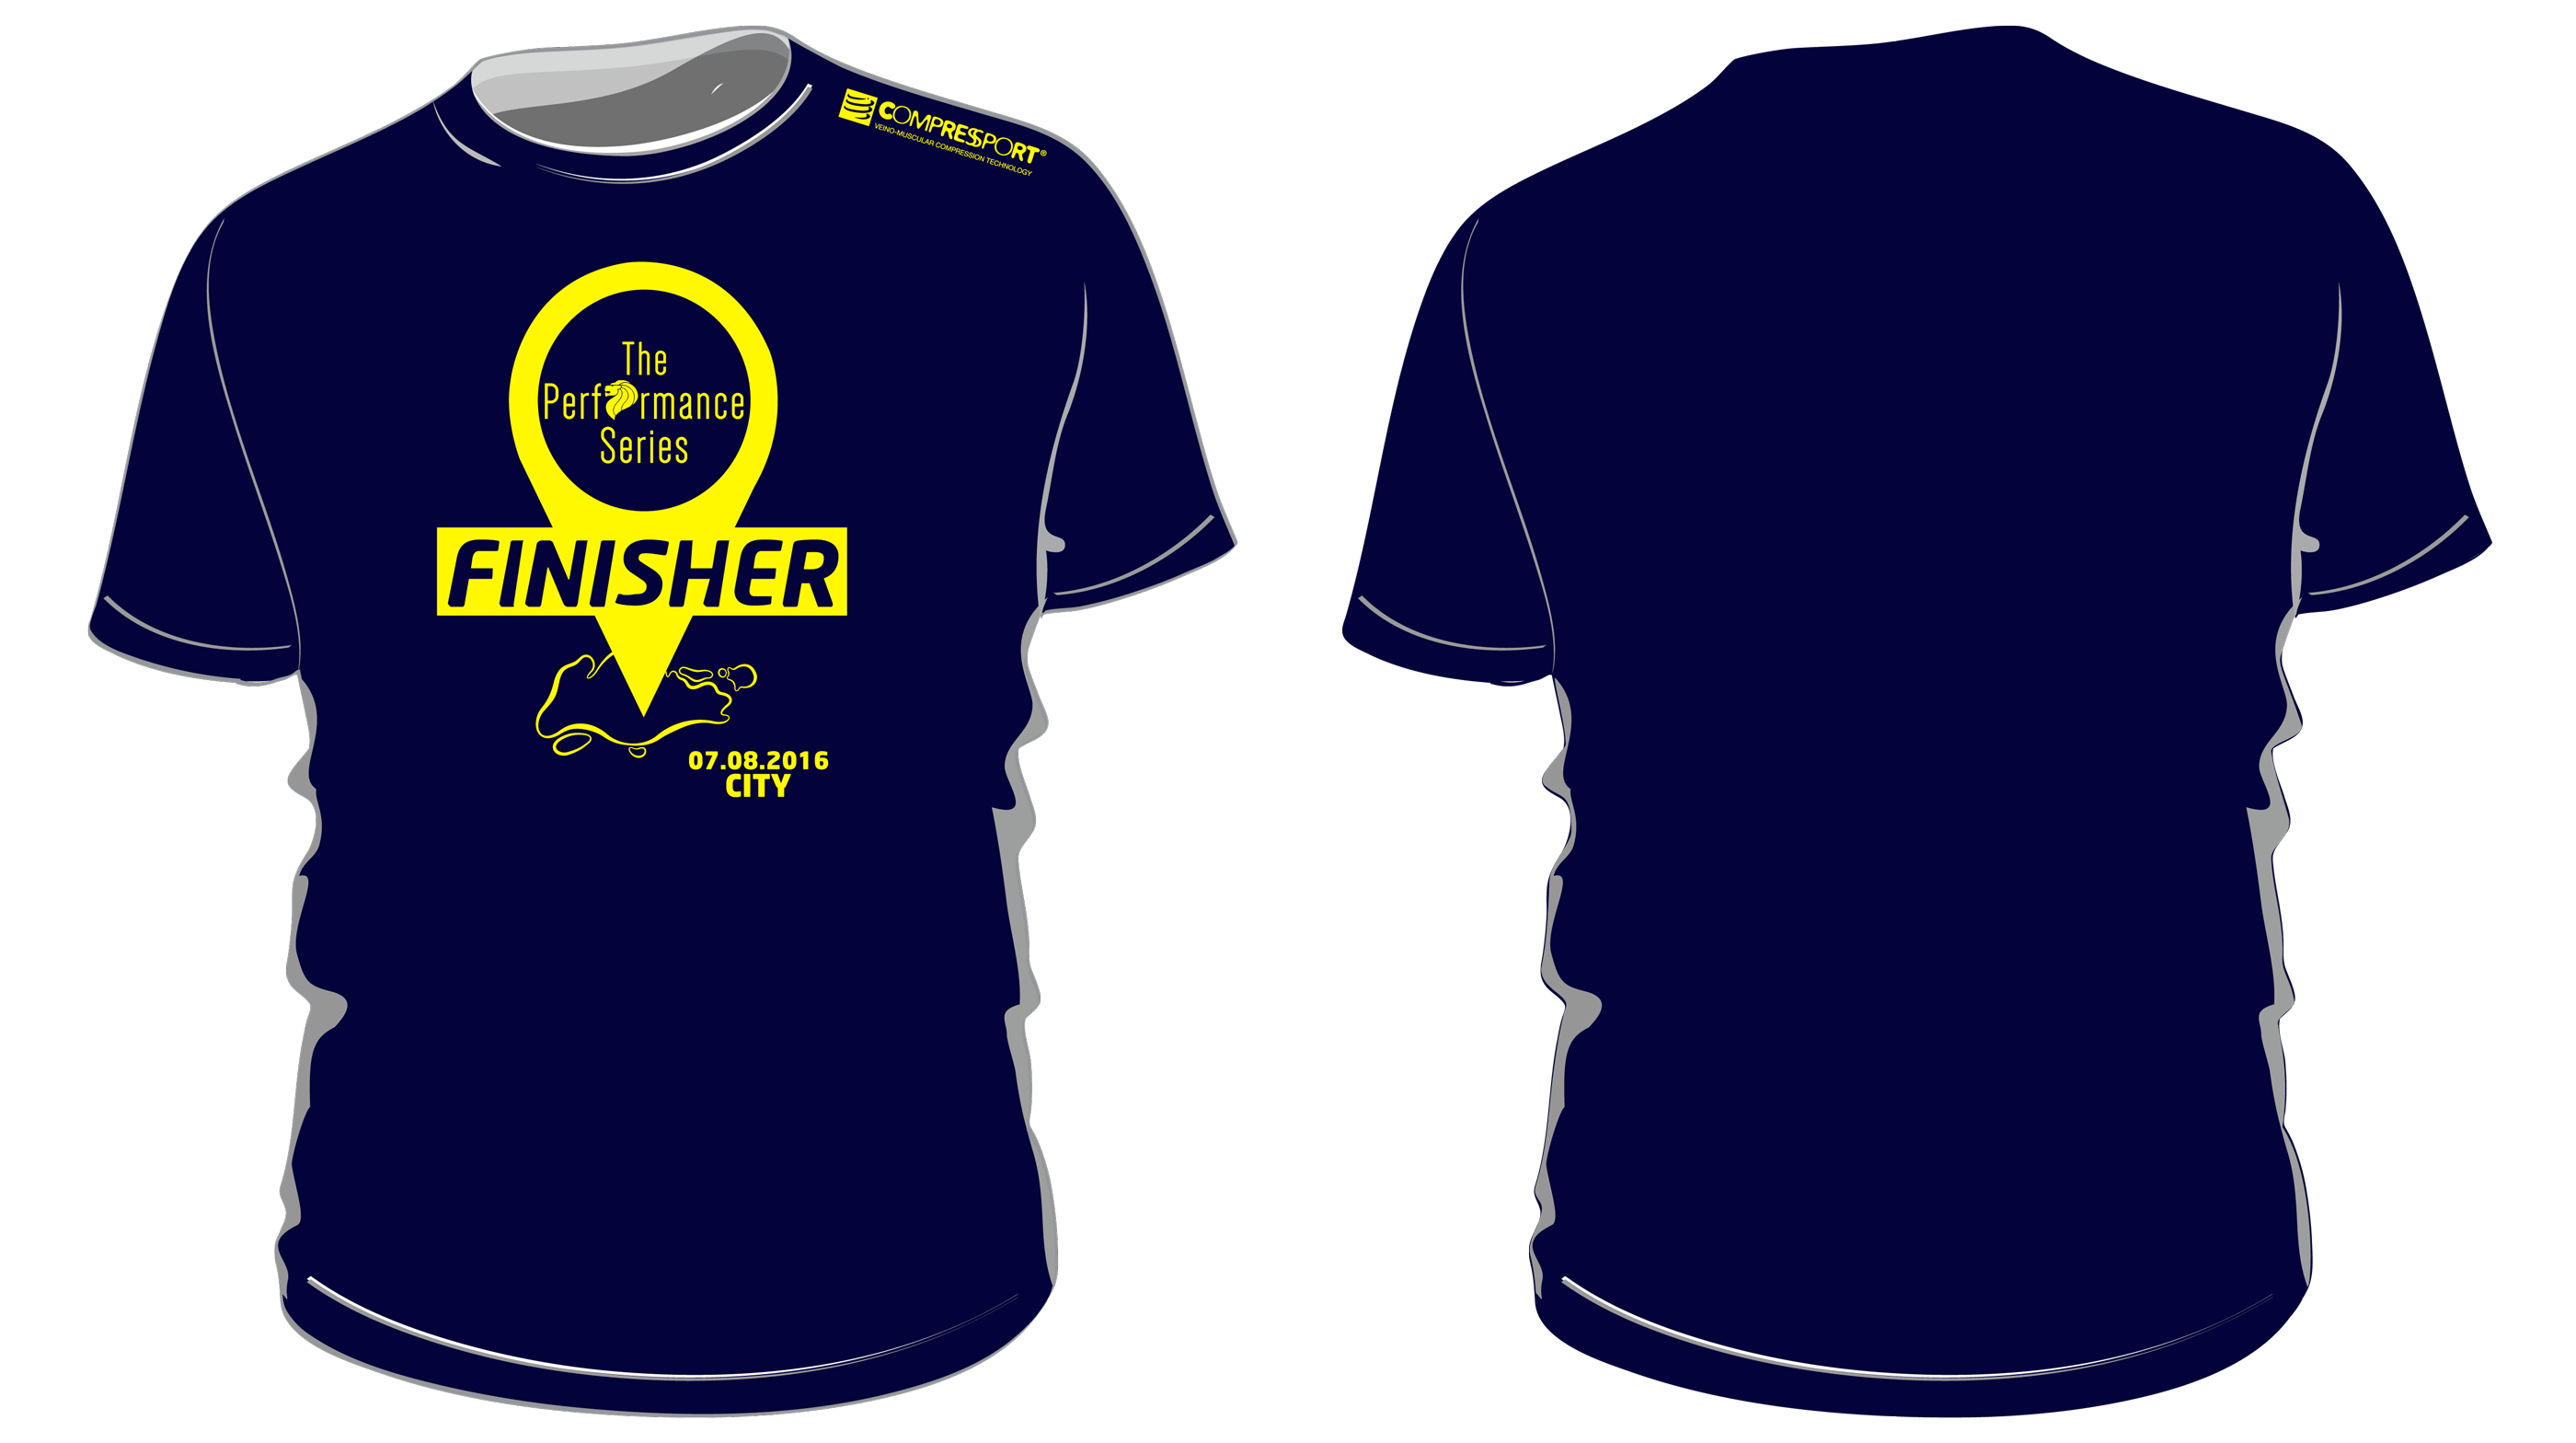 tps-r3-finisher-t-shirt